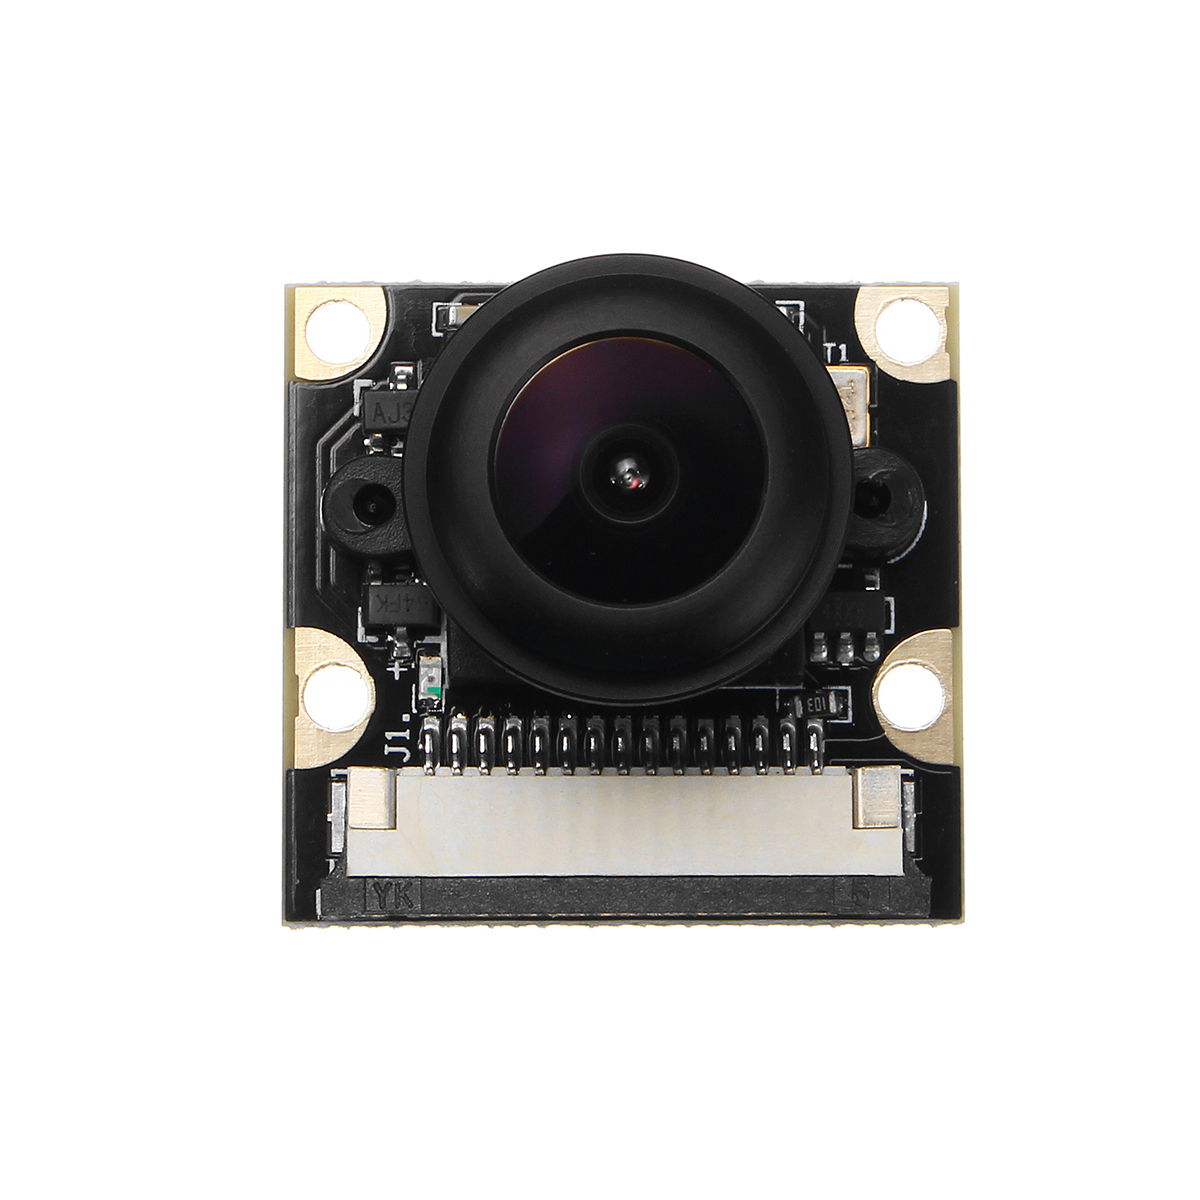 1080P 5MP 160° Fish Eye Surveillance Camera Module For Raspberry Pi With IR Night Vision